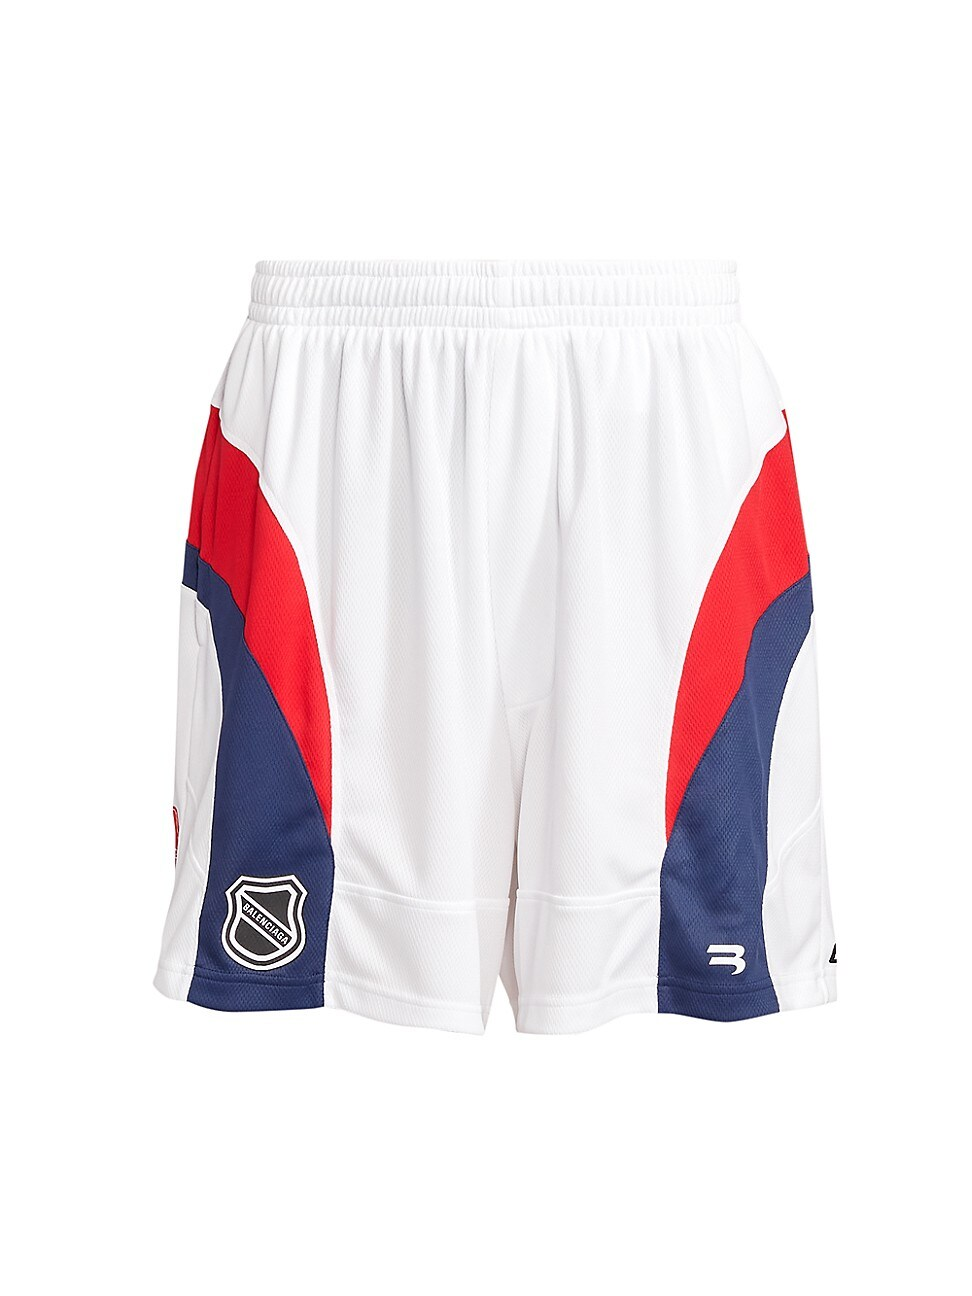 Balenciaga MEN'S HOCKEY SHORTS